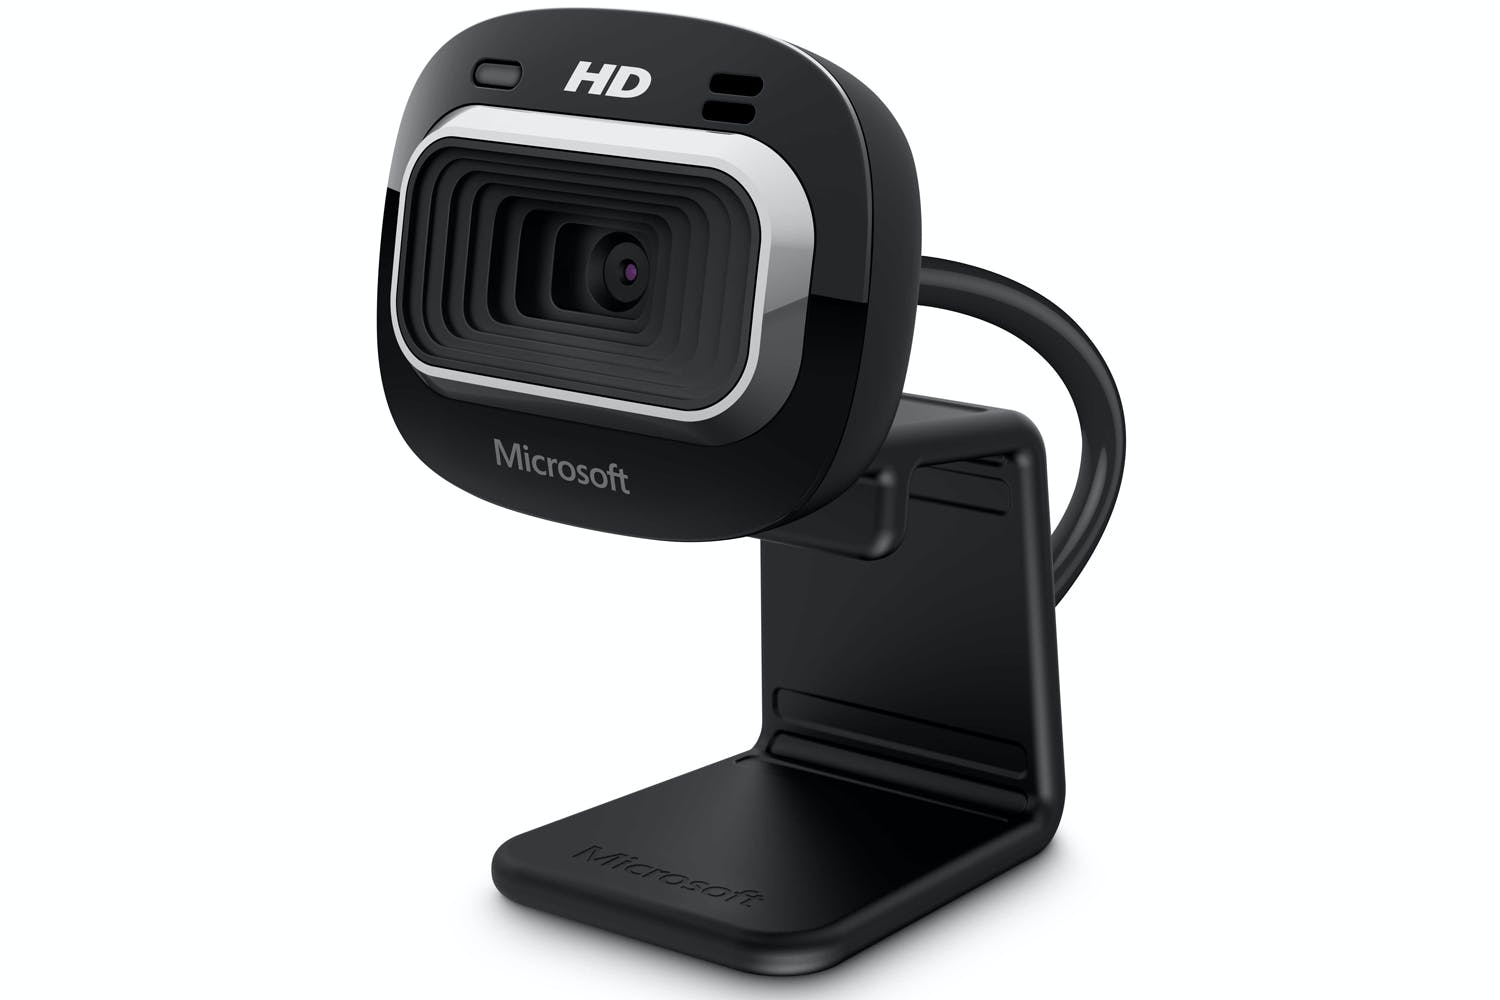 Microsoft lifecam hd 3000 webcam black ireland for Bed tech 3000